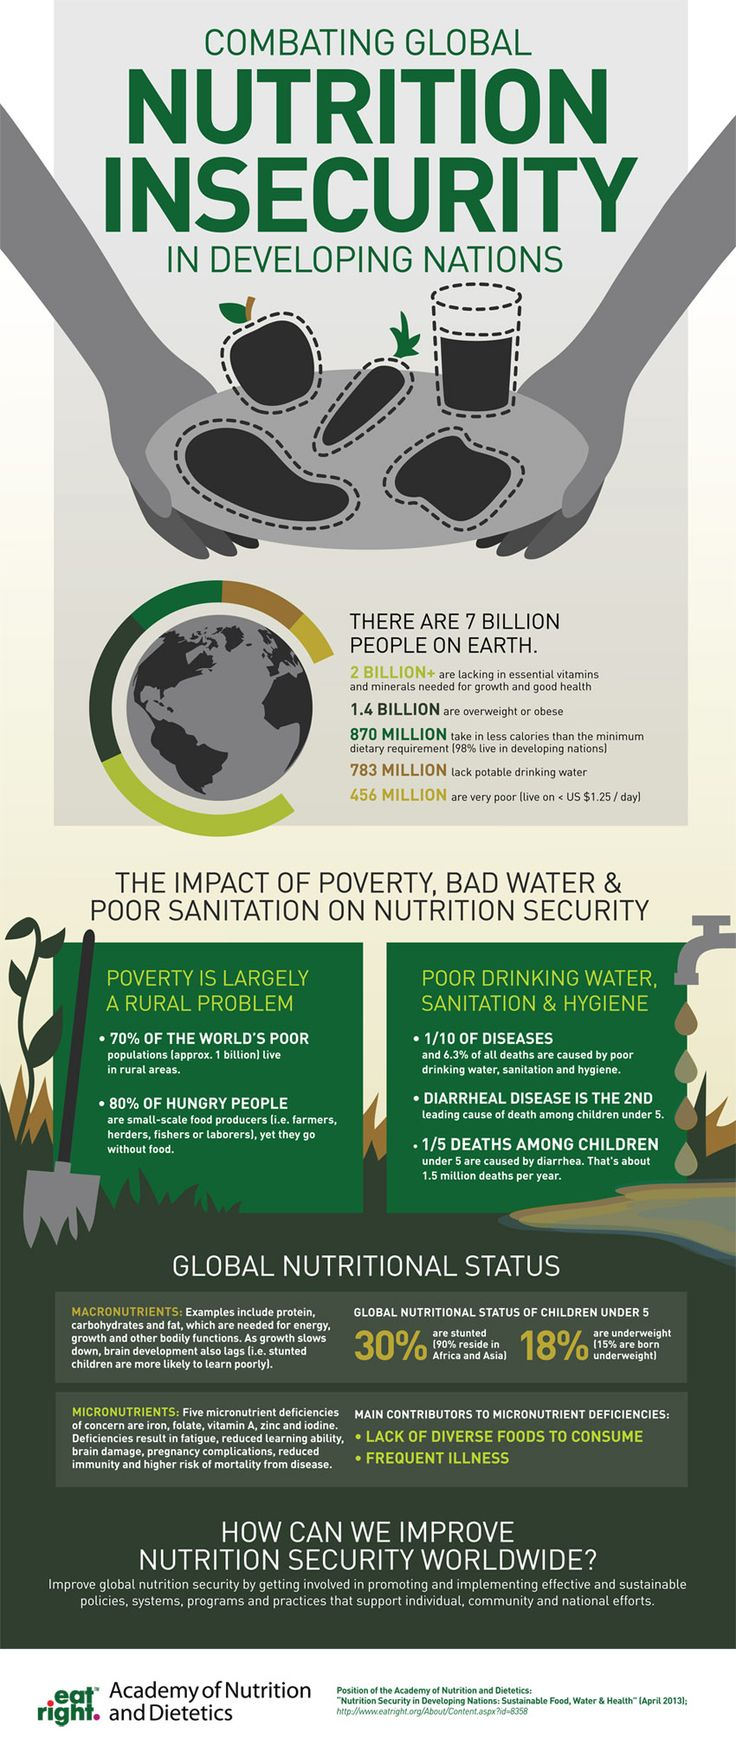 Combating Global Nutrition Insecurity in Developing Nations | www.eatright.org #infographic